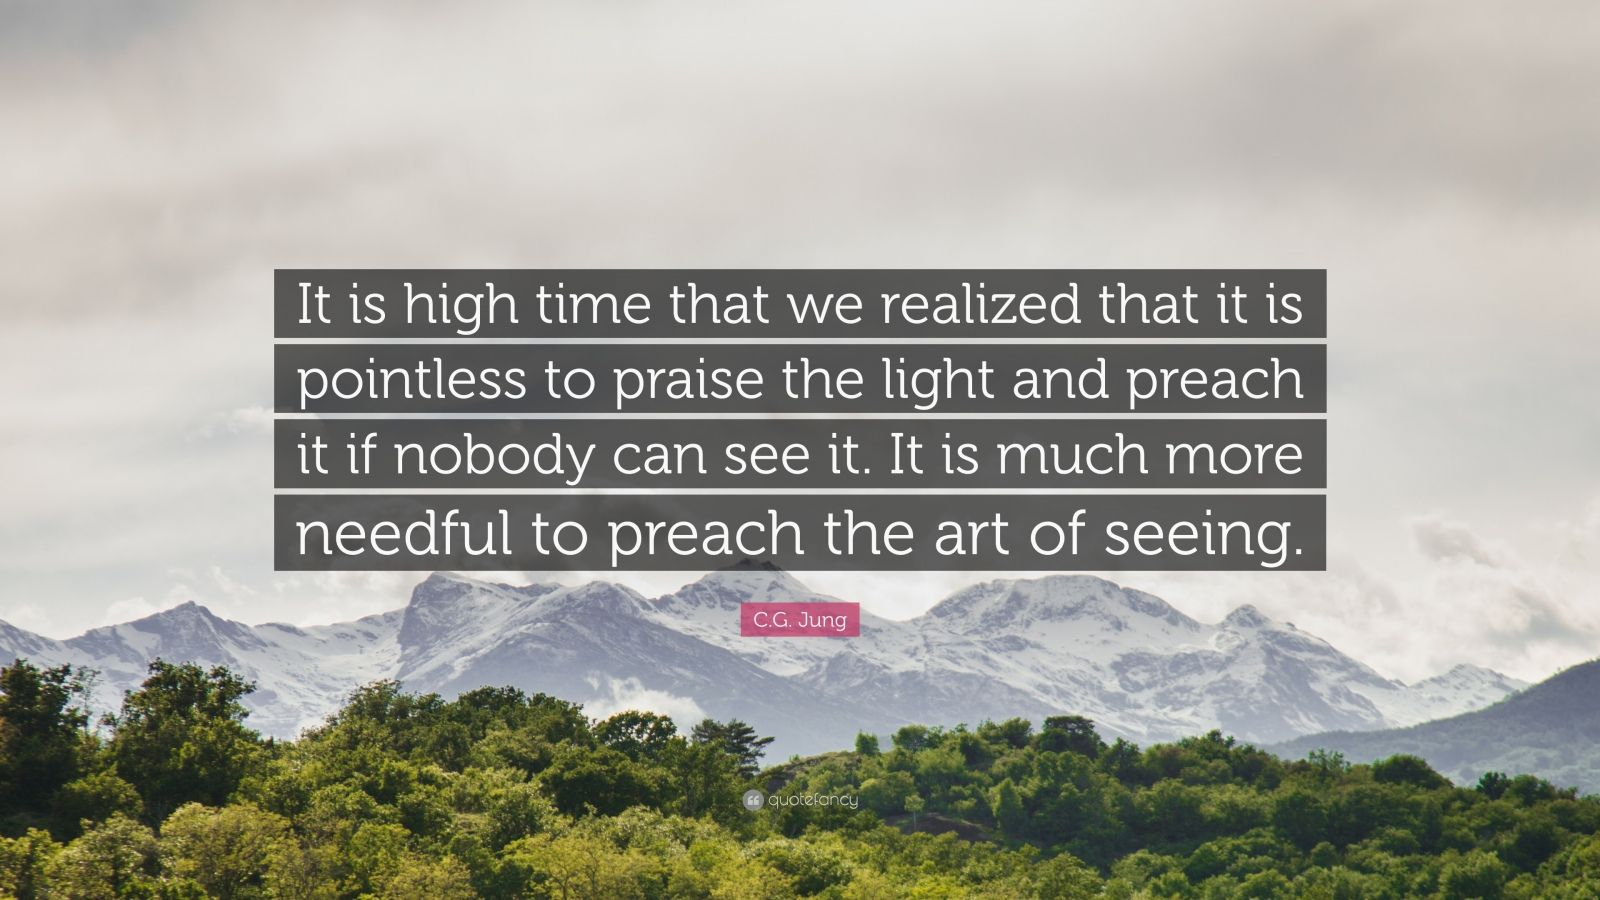 """C.G. Jung Quote: """"It is high time that we realized that it is pointless to praise the light and preach it if nobody can see it. It is much more needful to preach the art of seeing."""""""